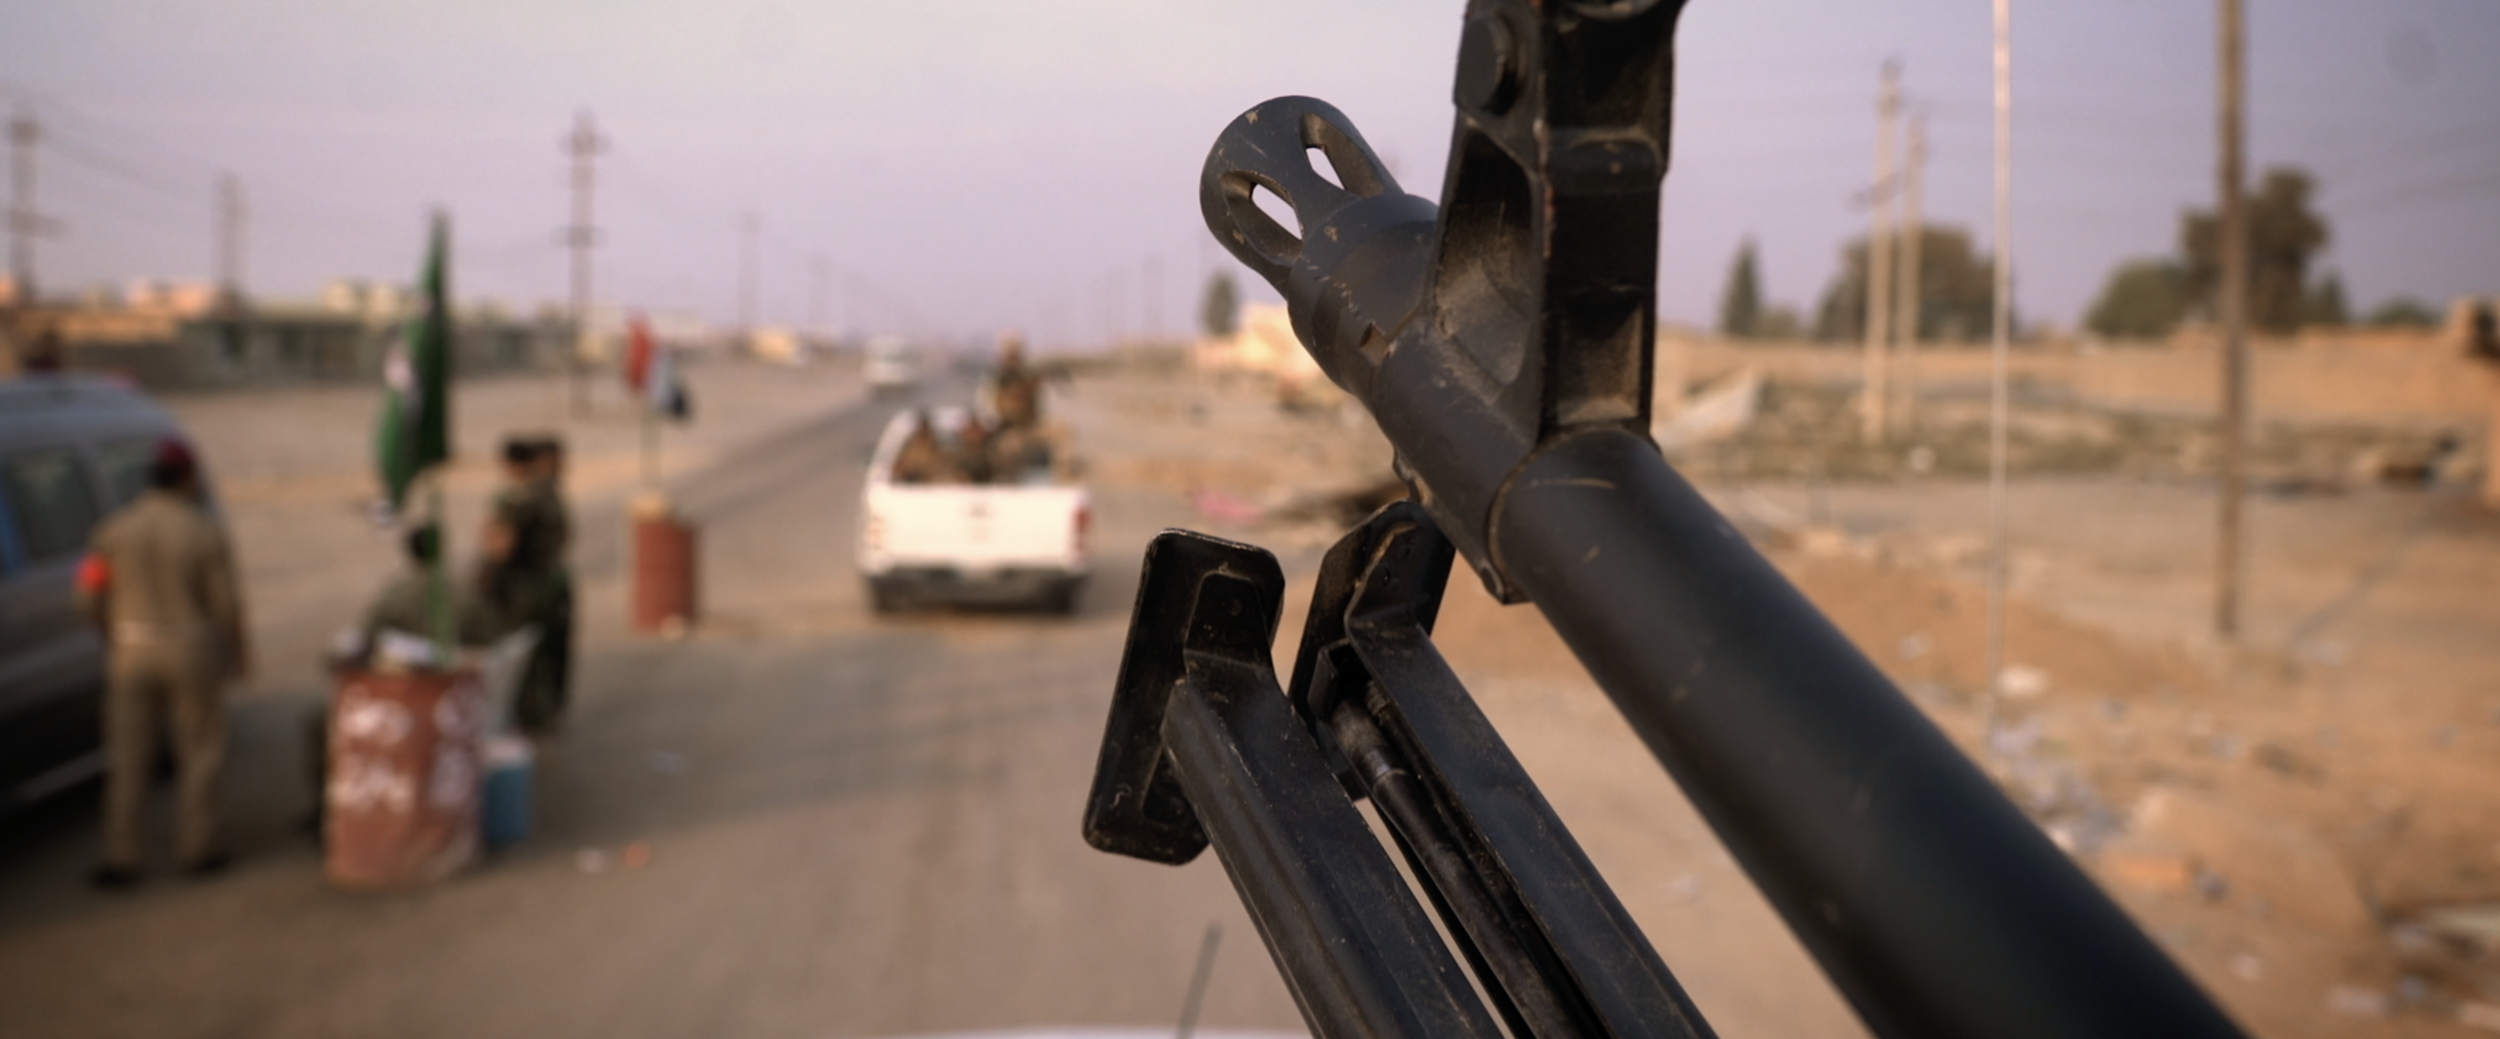 Rifle muzzle overlooking street.png